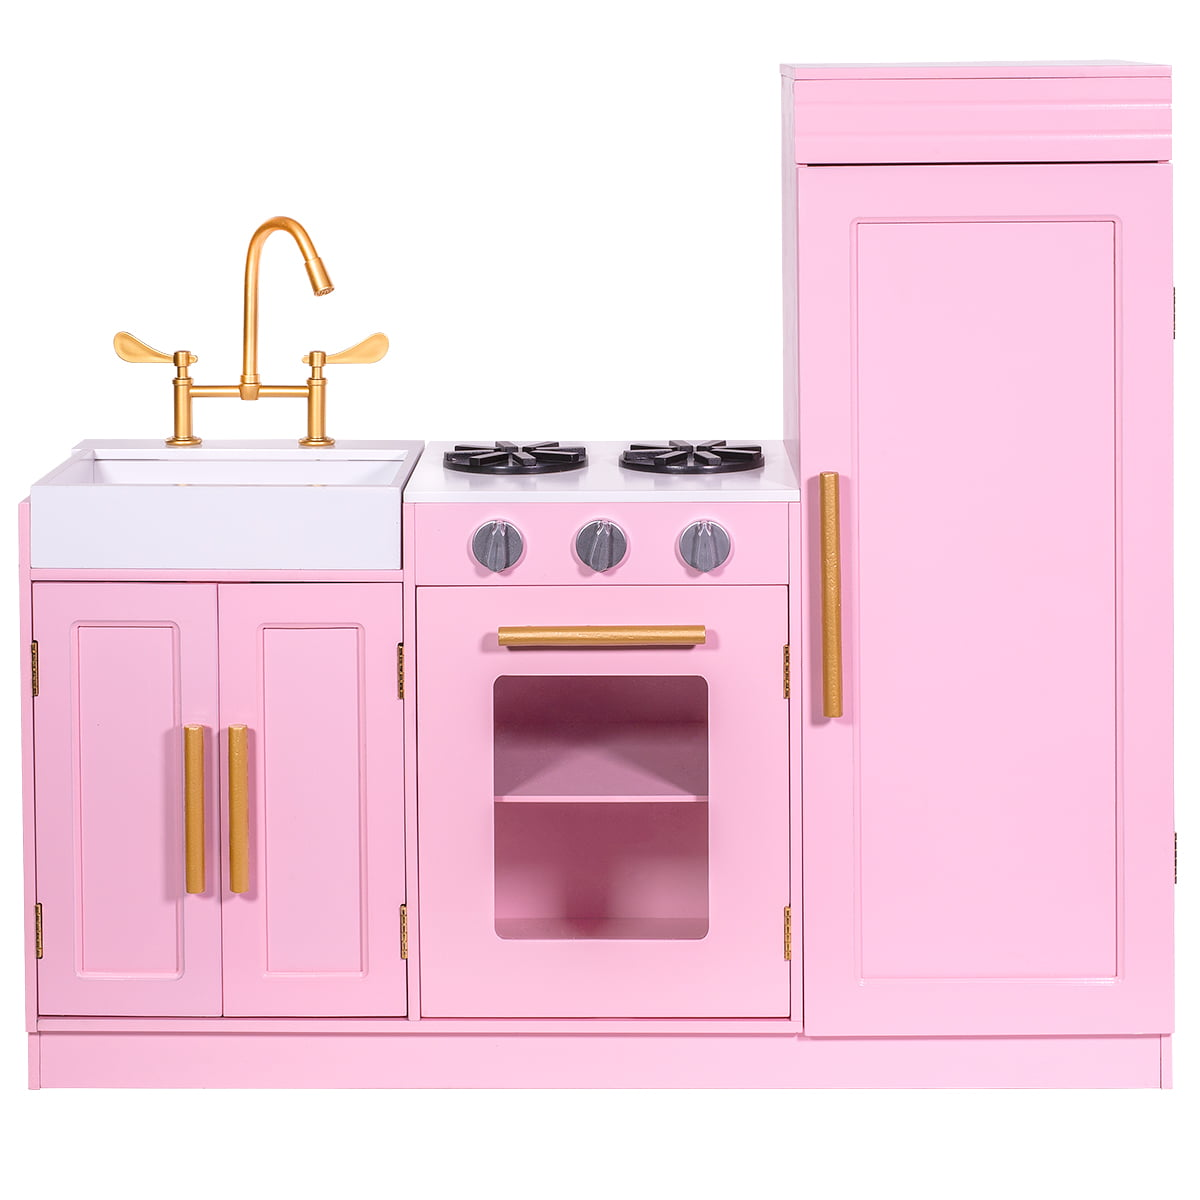 Ihubdeal Clic Toys Kids Play Kitchen